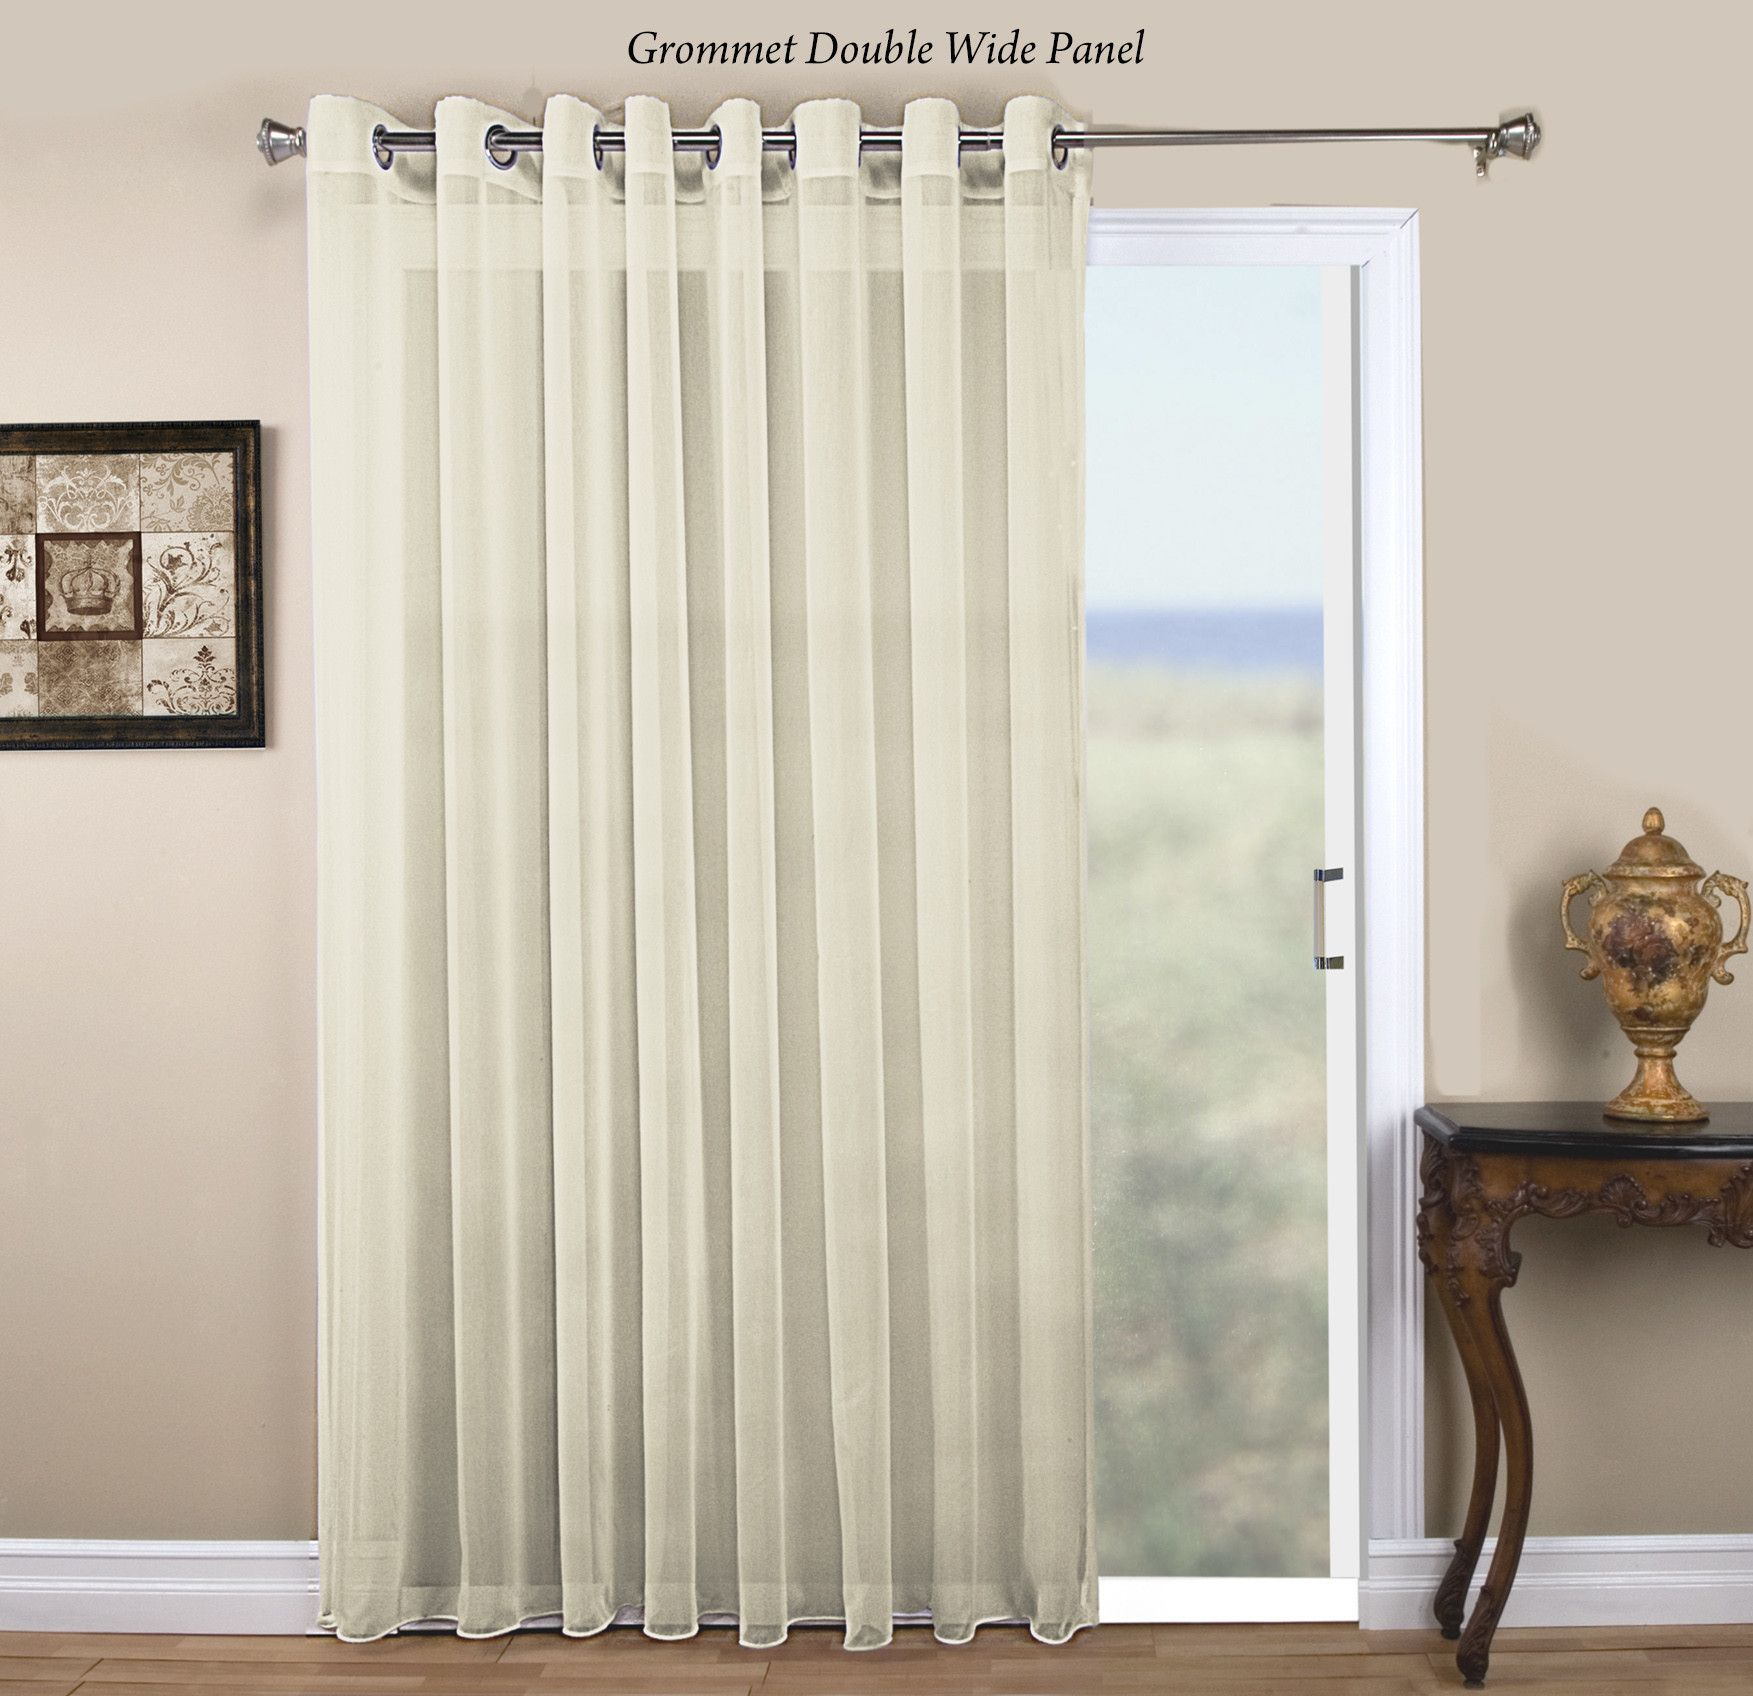 Features Brushed Nickel Grommets Drapes Beautifully Filters Outside Light And Glaare Includes An Attachable Pull Wand Provides Privacy